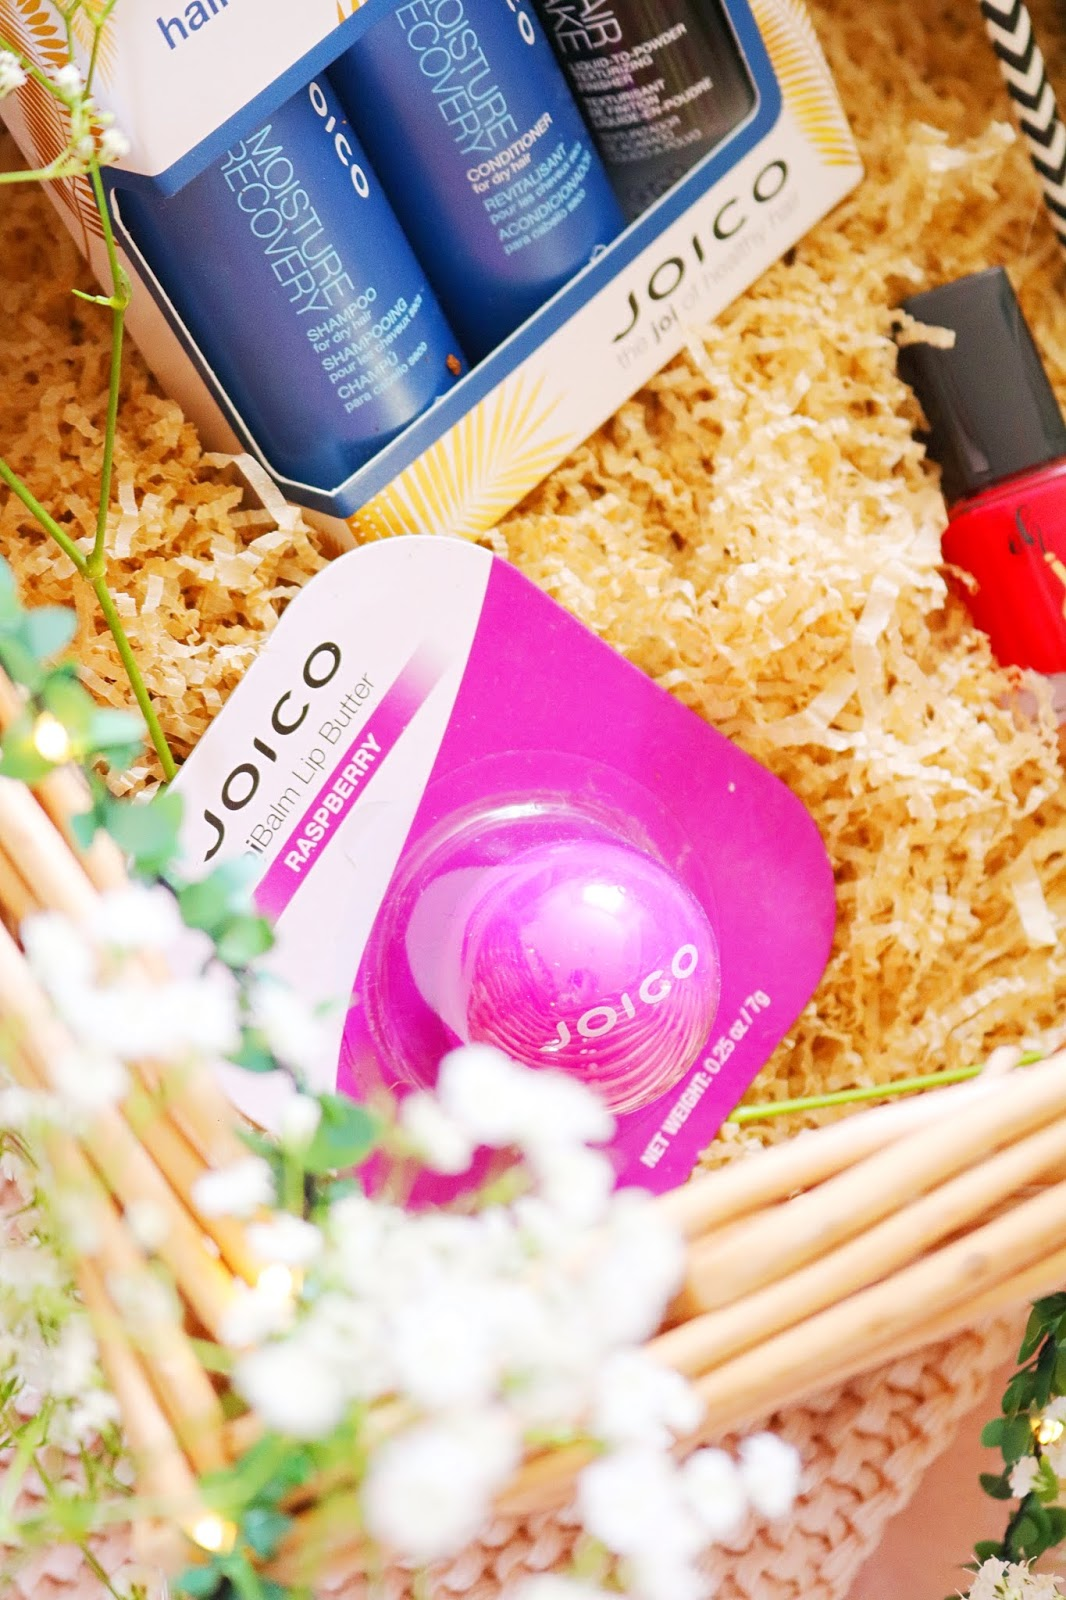 Festival Beauty Picks ft. Joico + Osmo